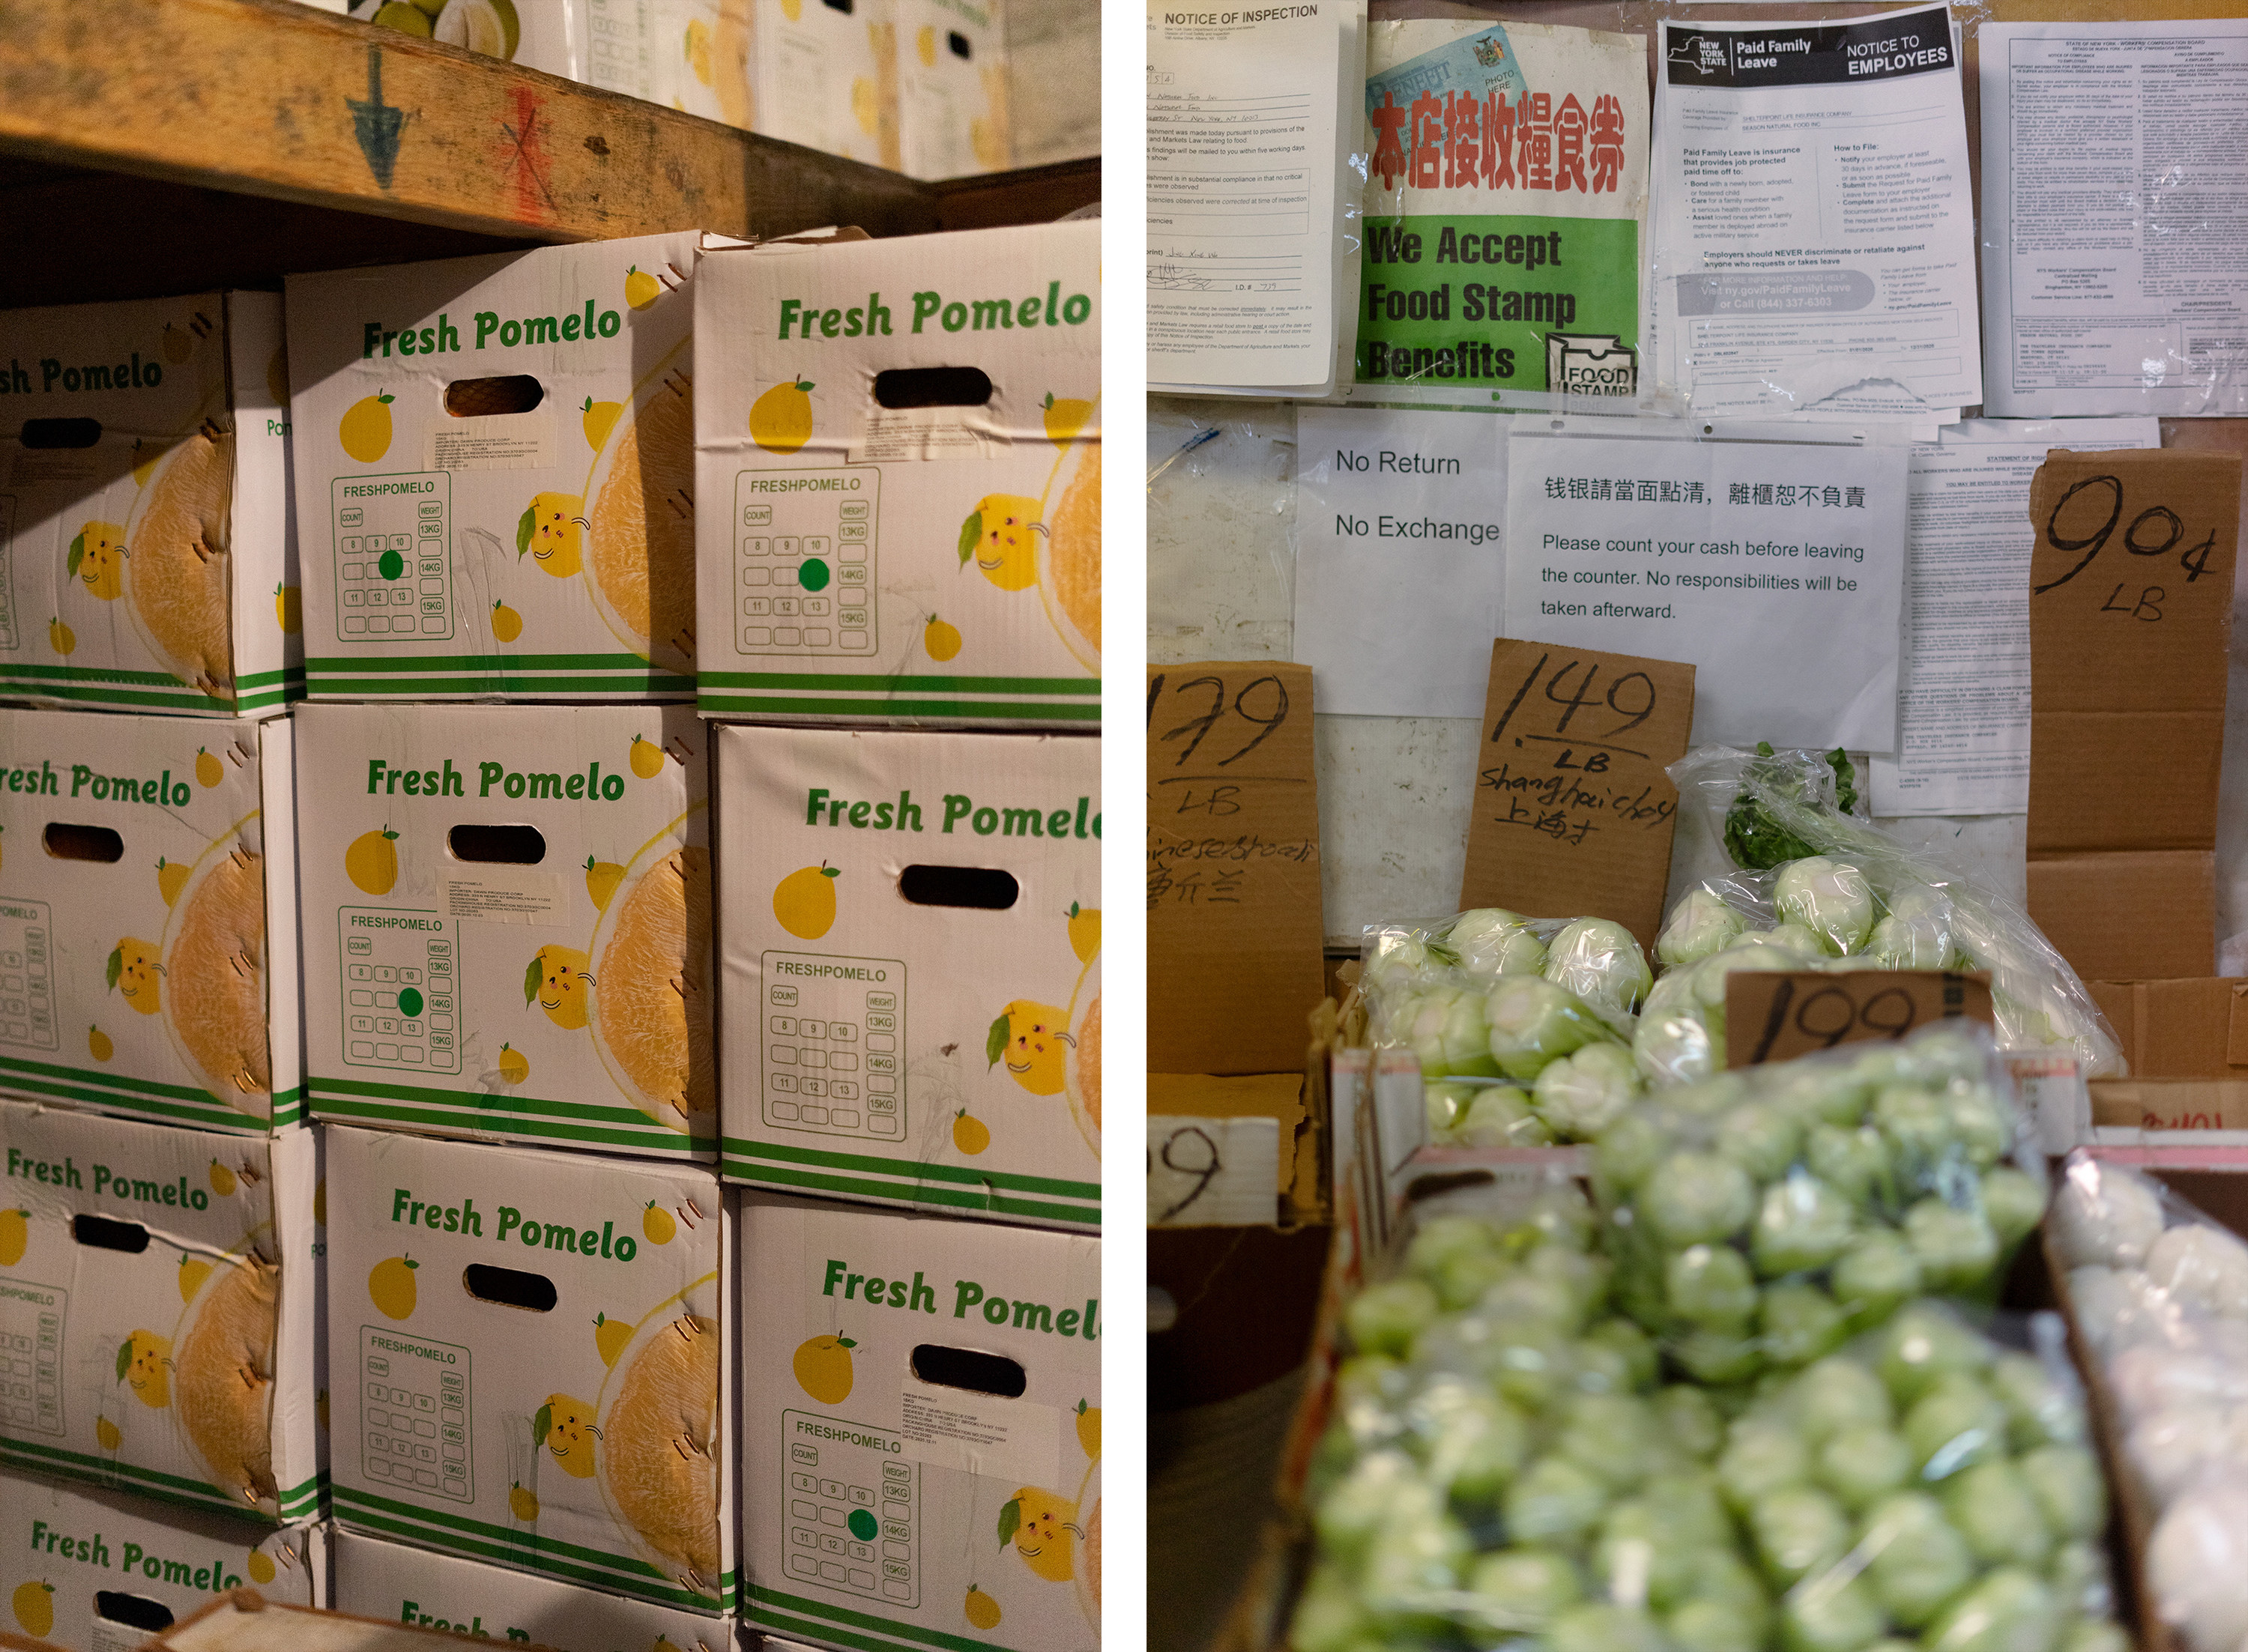 Boxes of produce and vegetables